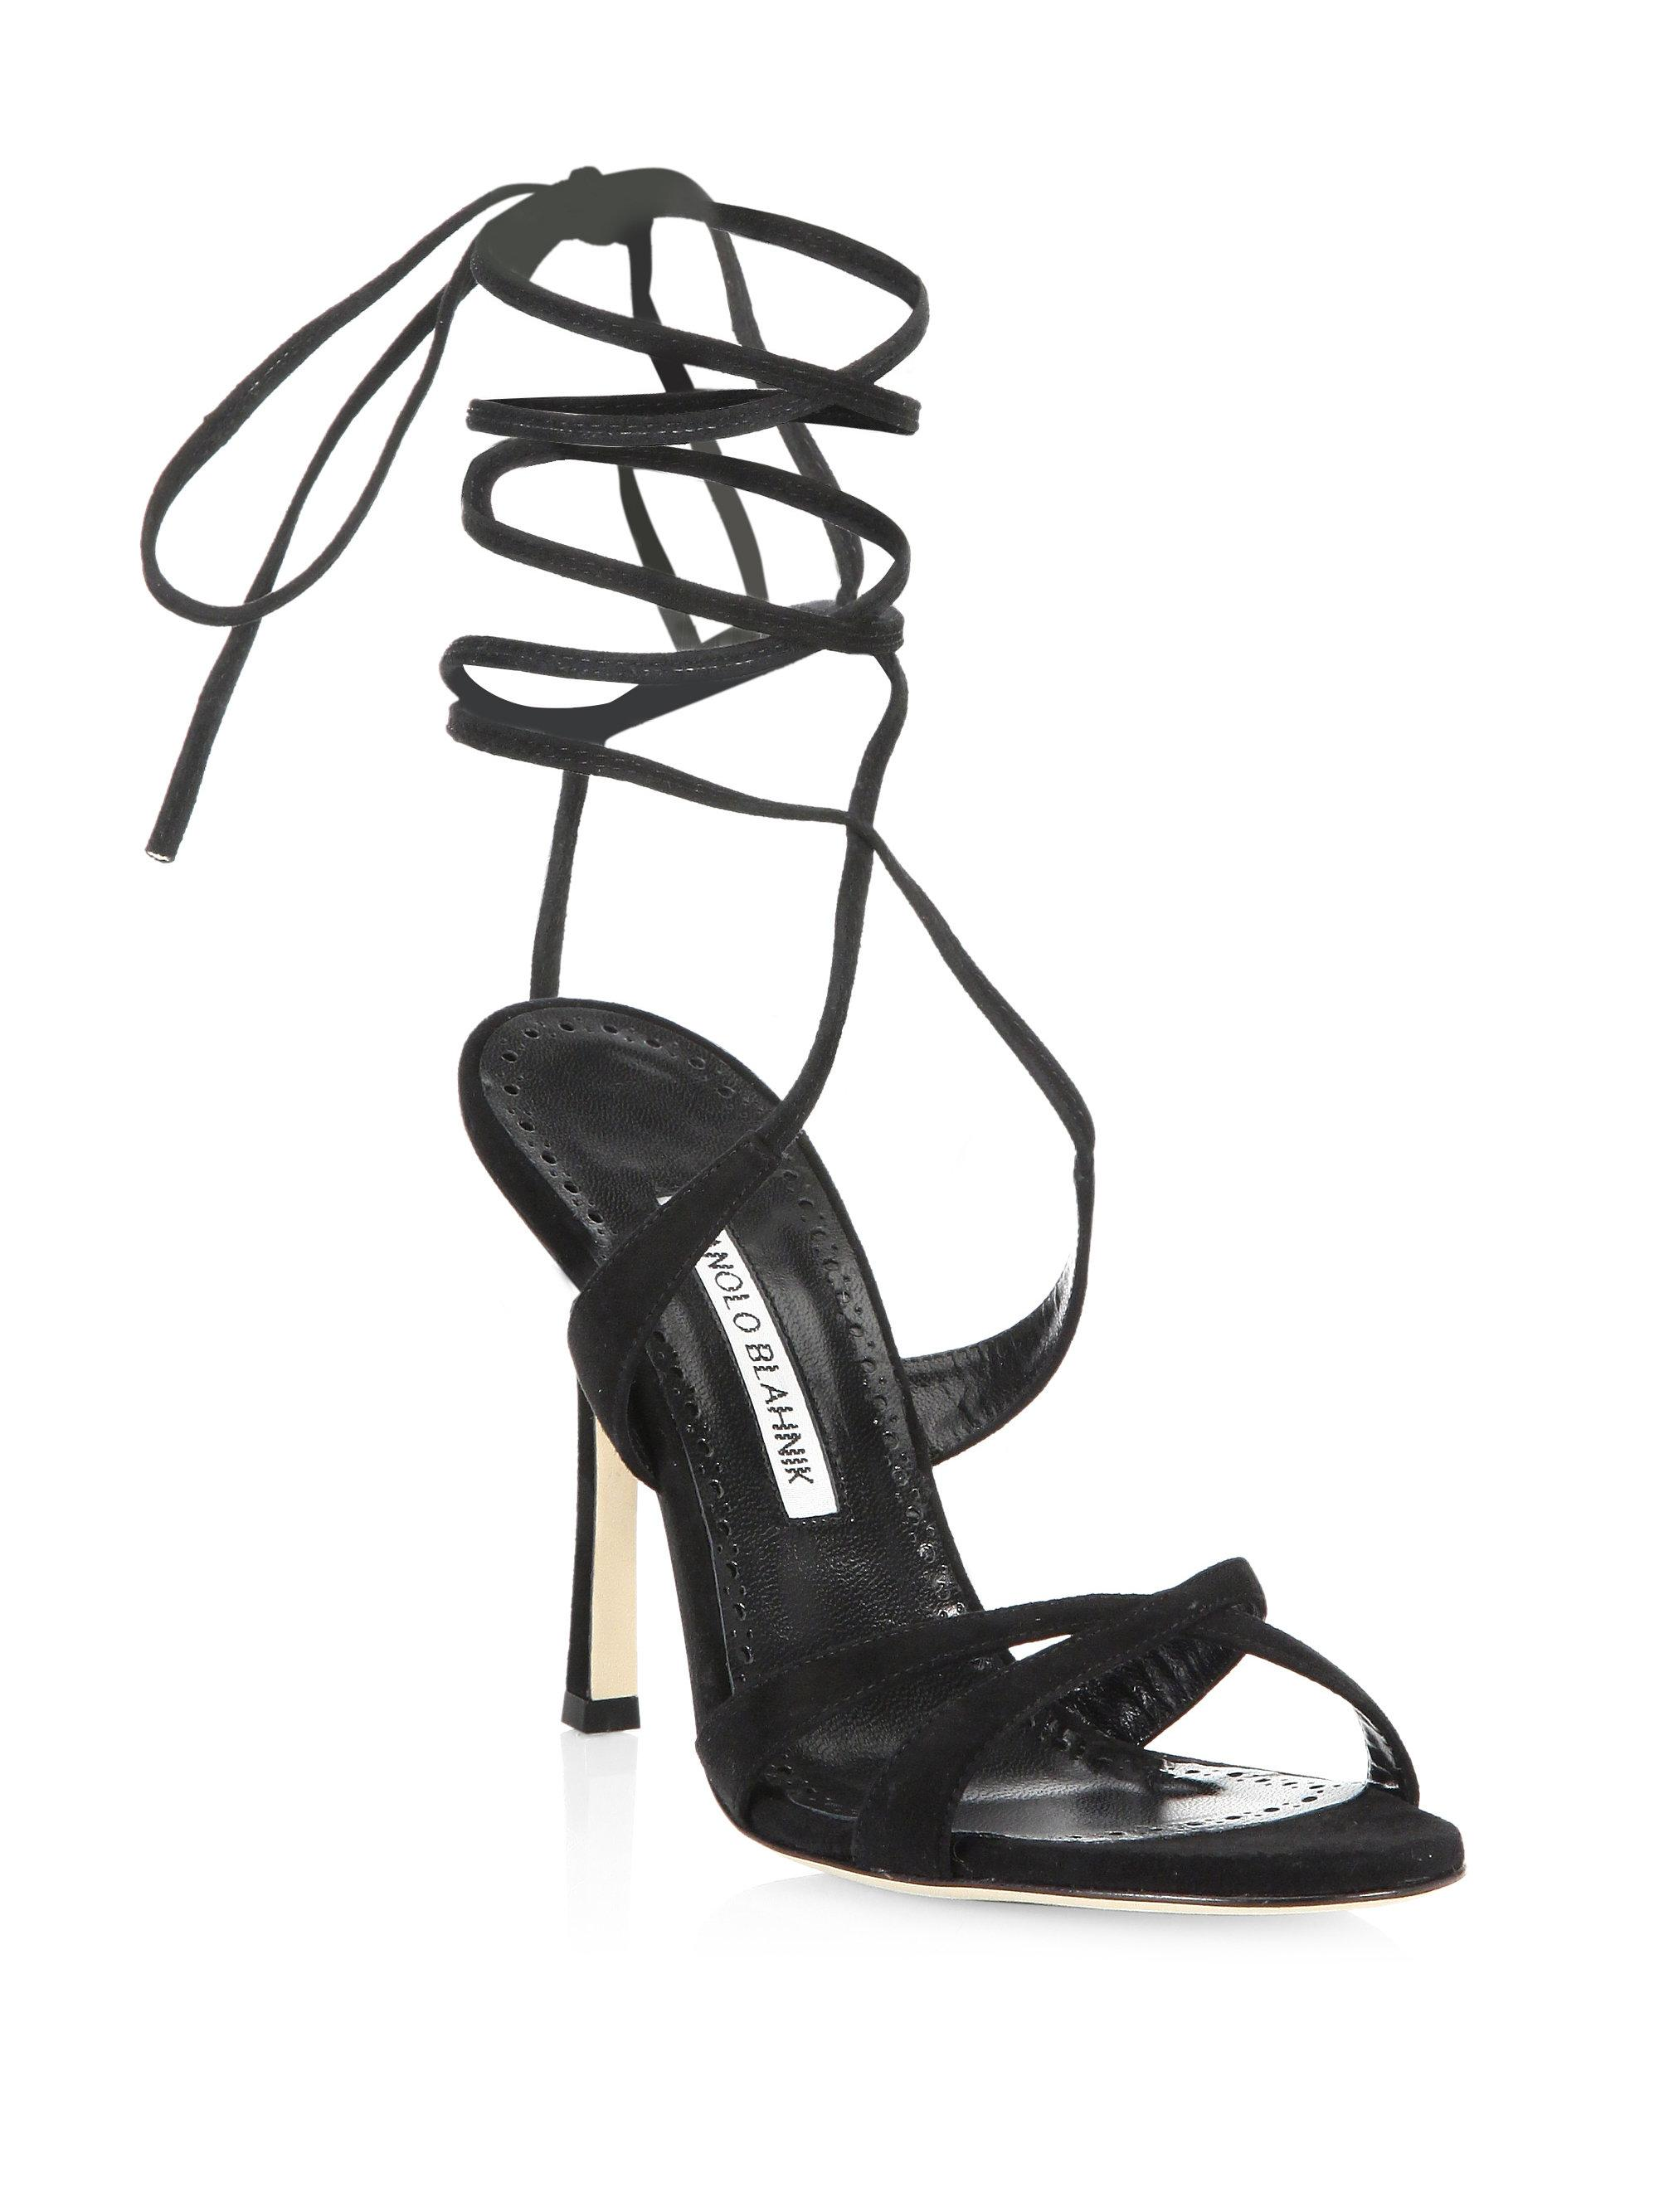 Manolo Blahnik Suede Lace-Up Sandals cheap prices many kinds of sale online lNaJQKGEi